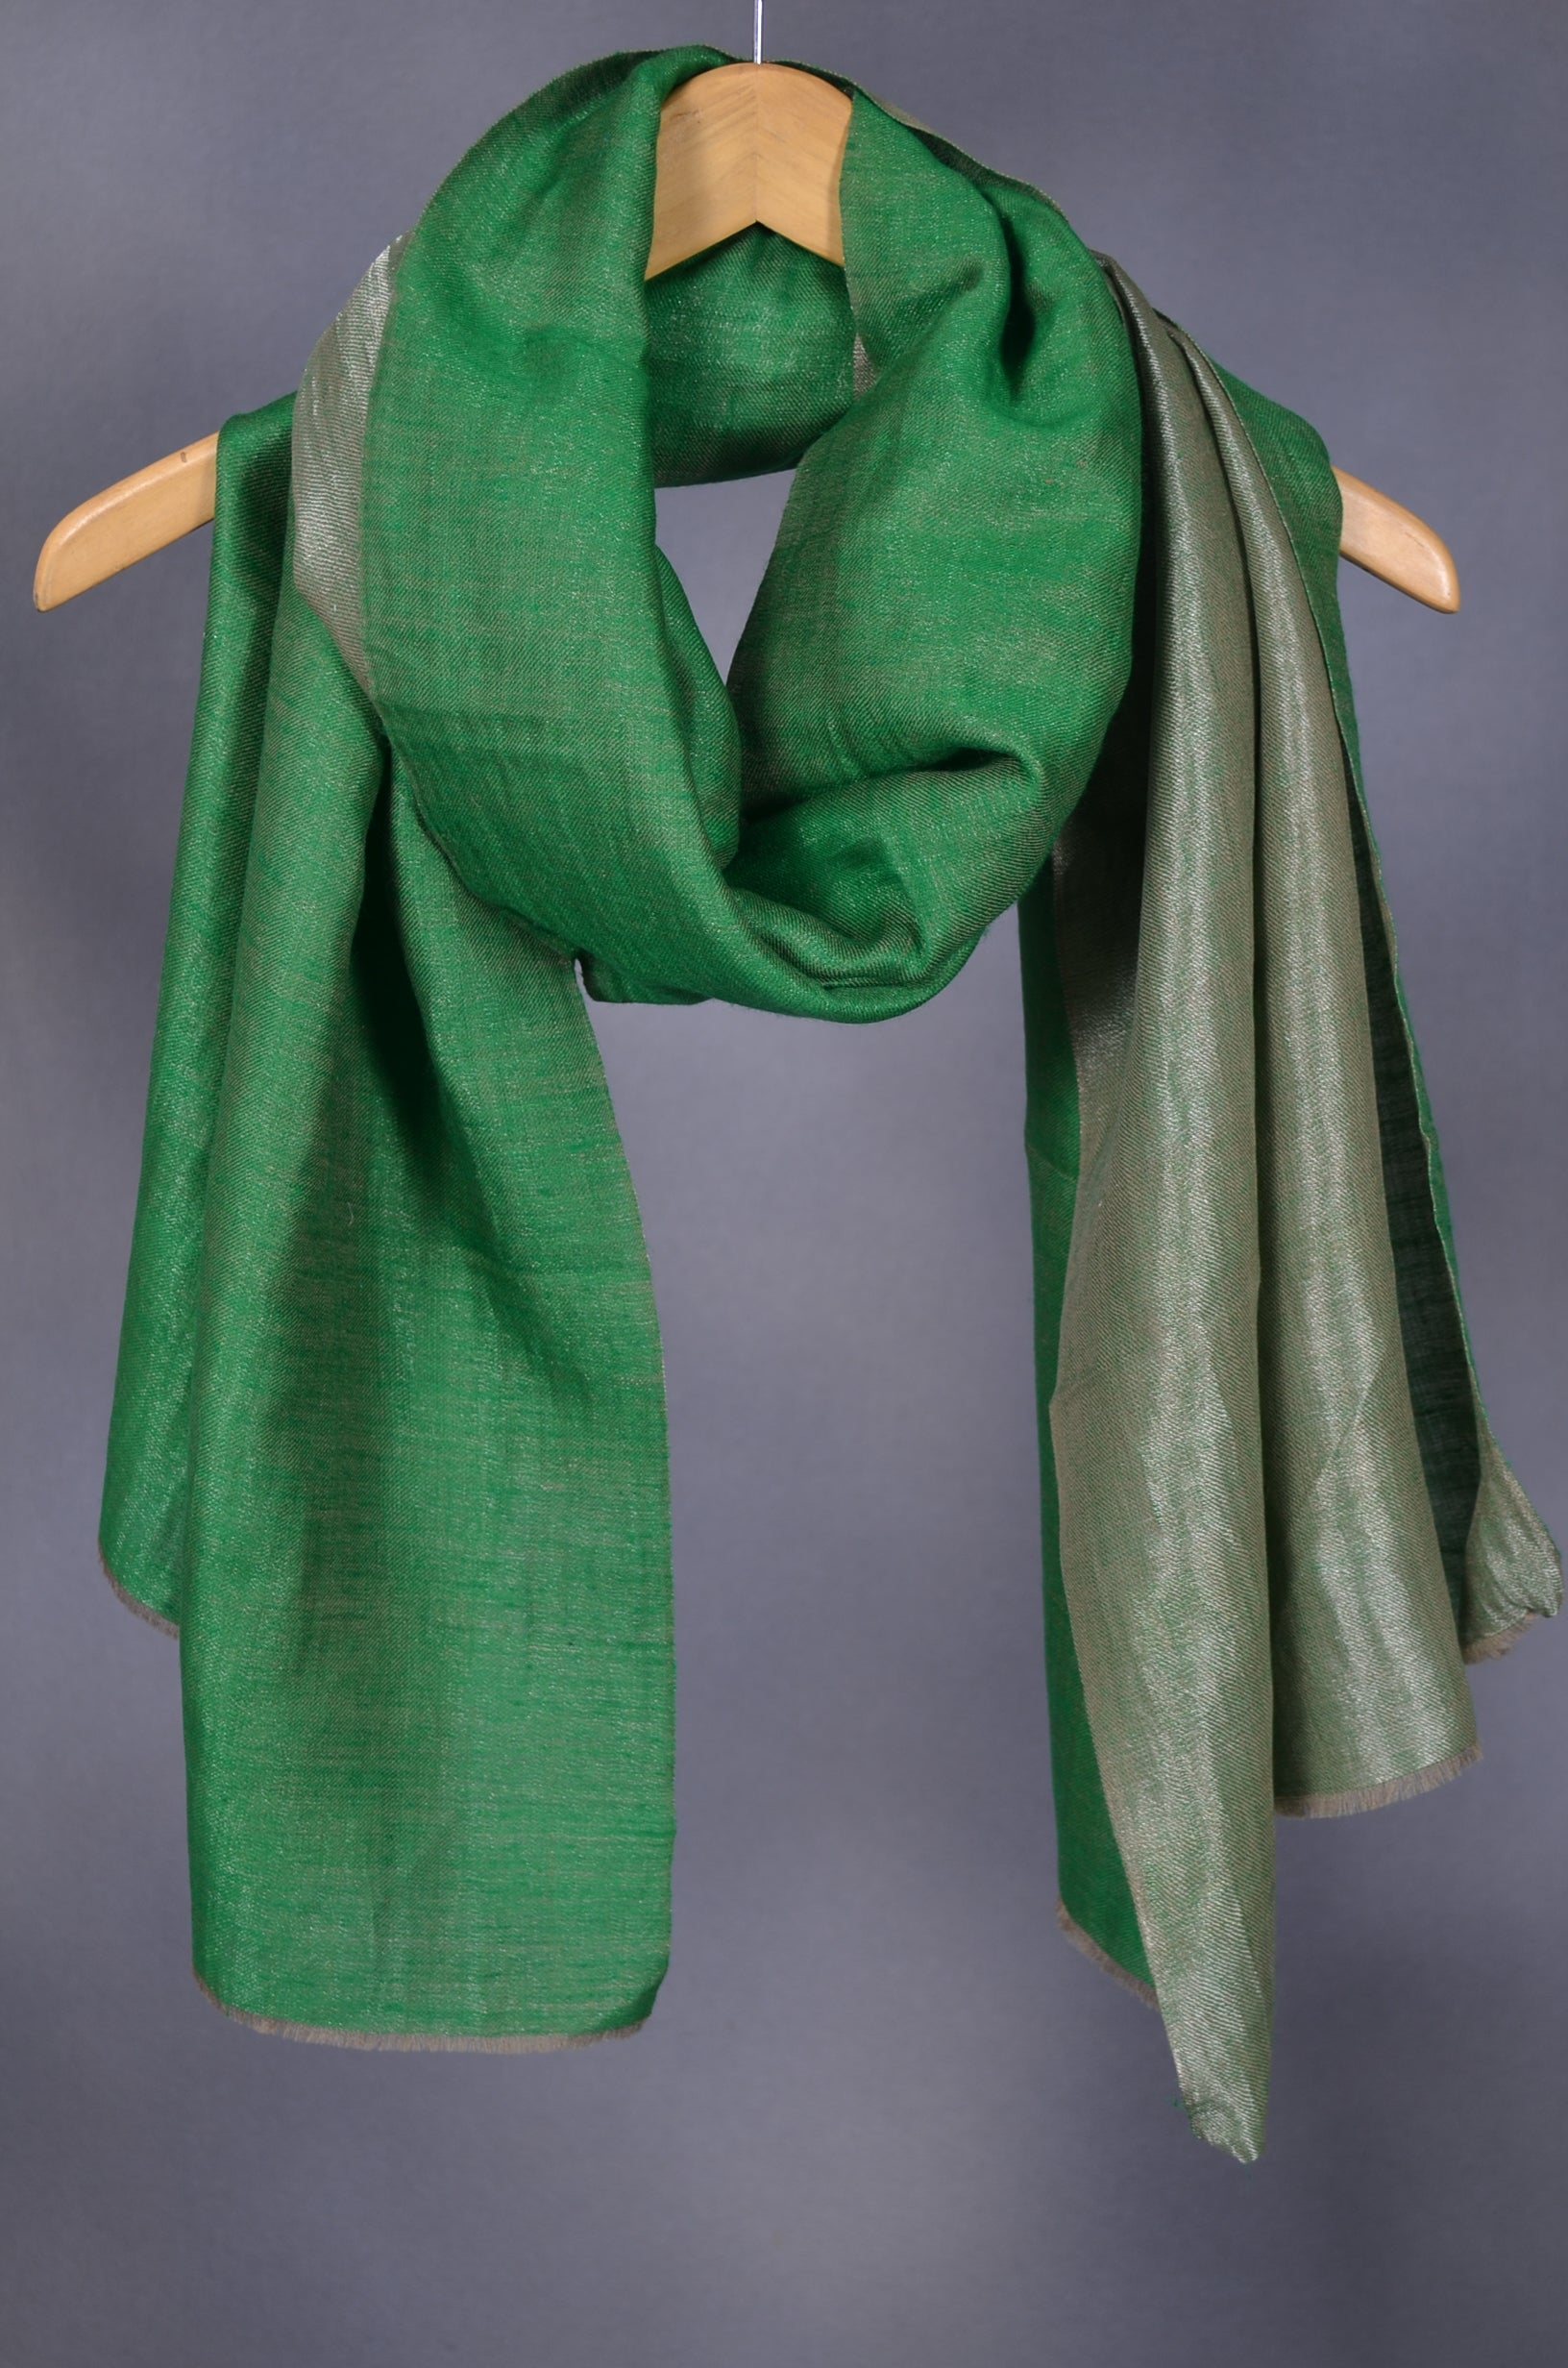 Reversible Metallic Green and Silver Handwoven Cashmere Pashmina Scarf